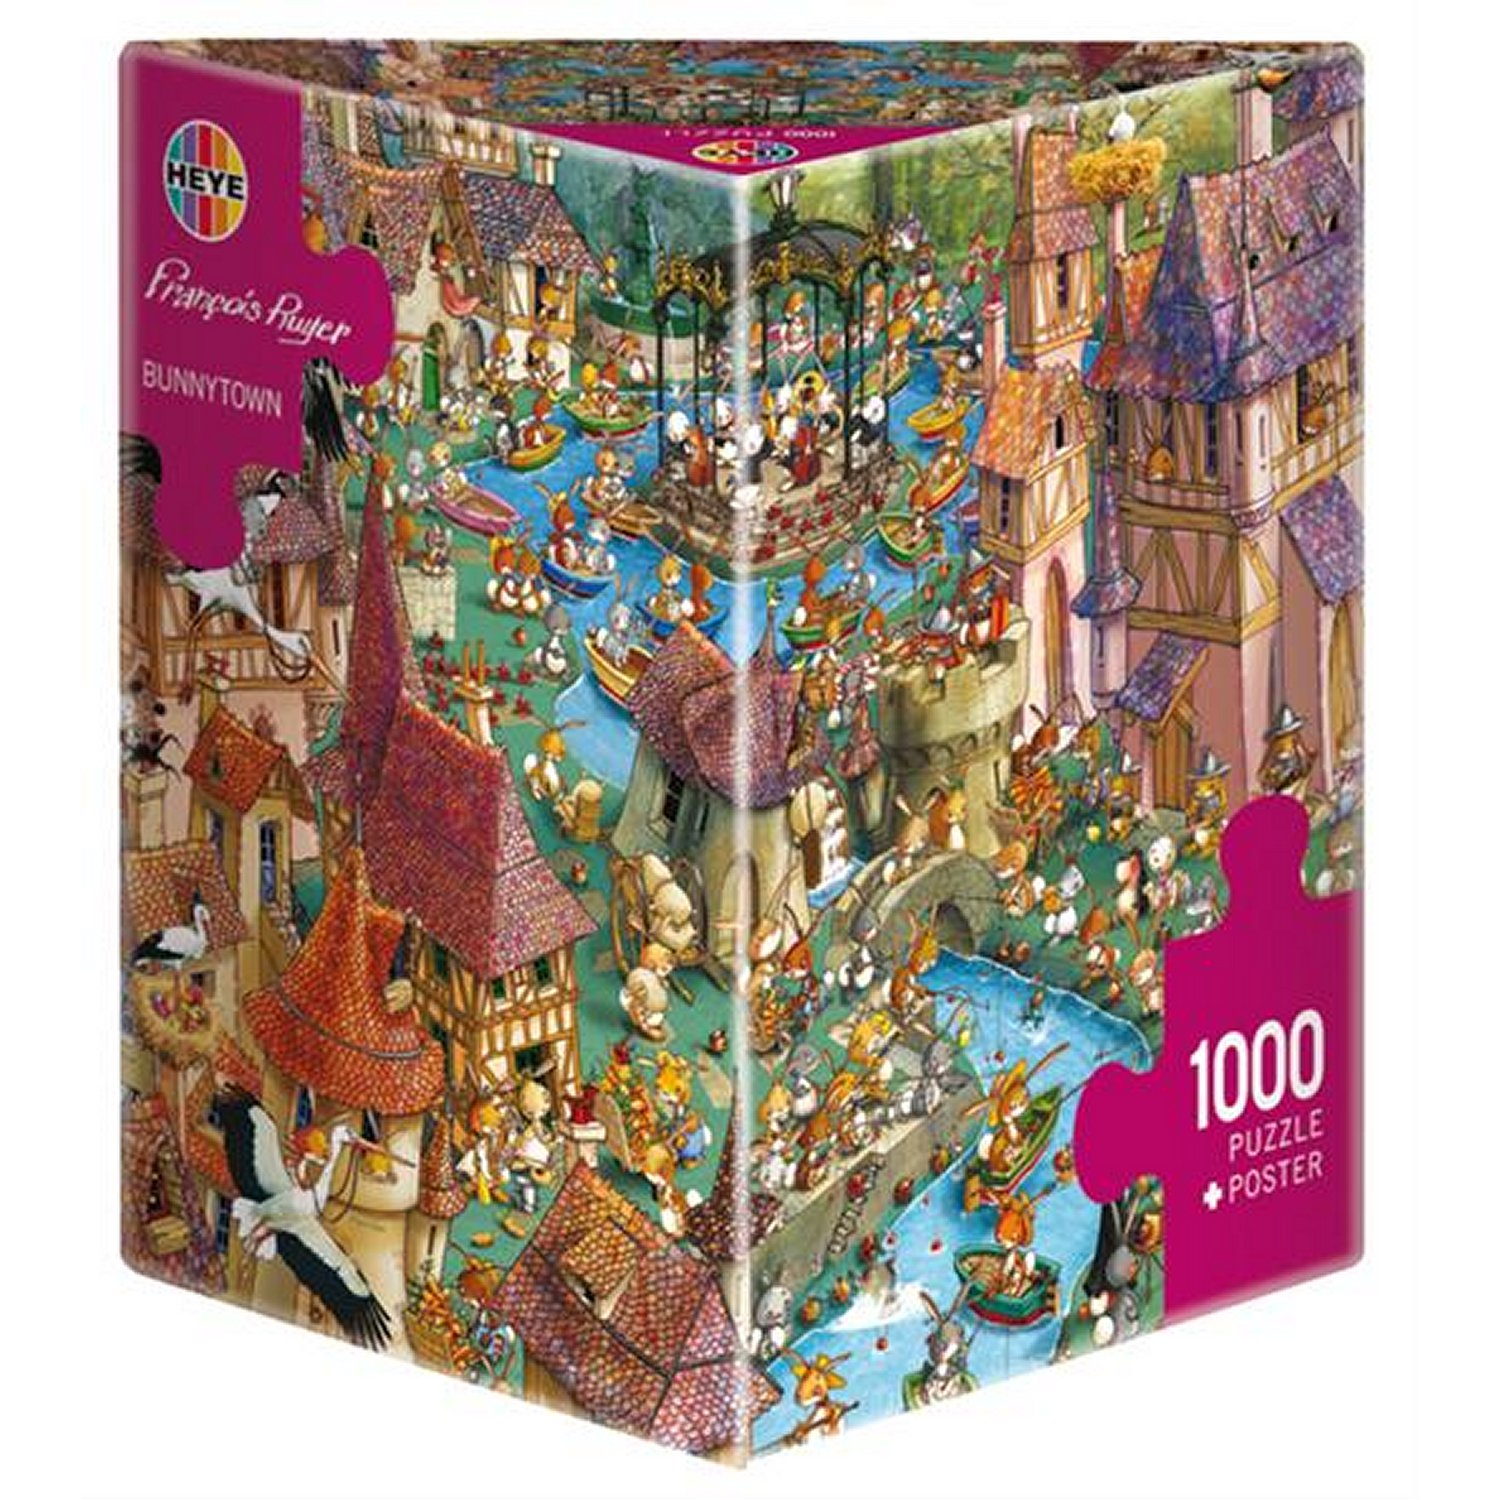 bunnytown francois ruyer 1000 pi ces puzzle format paysage heye verlag puzzle acheter en ligne. Black Bedroom Furniture Sets. Home Design Ideas